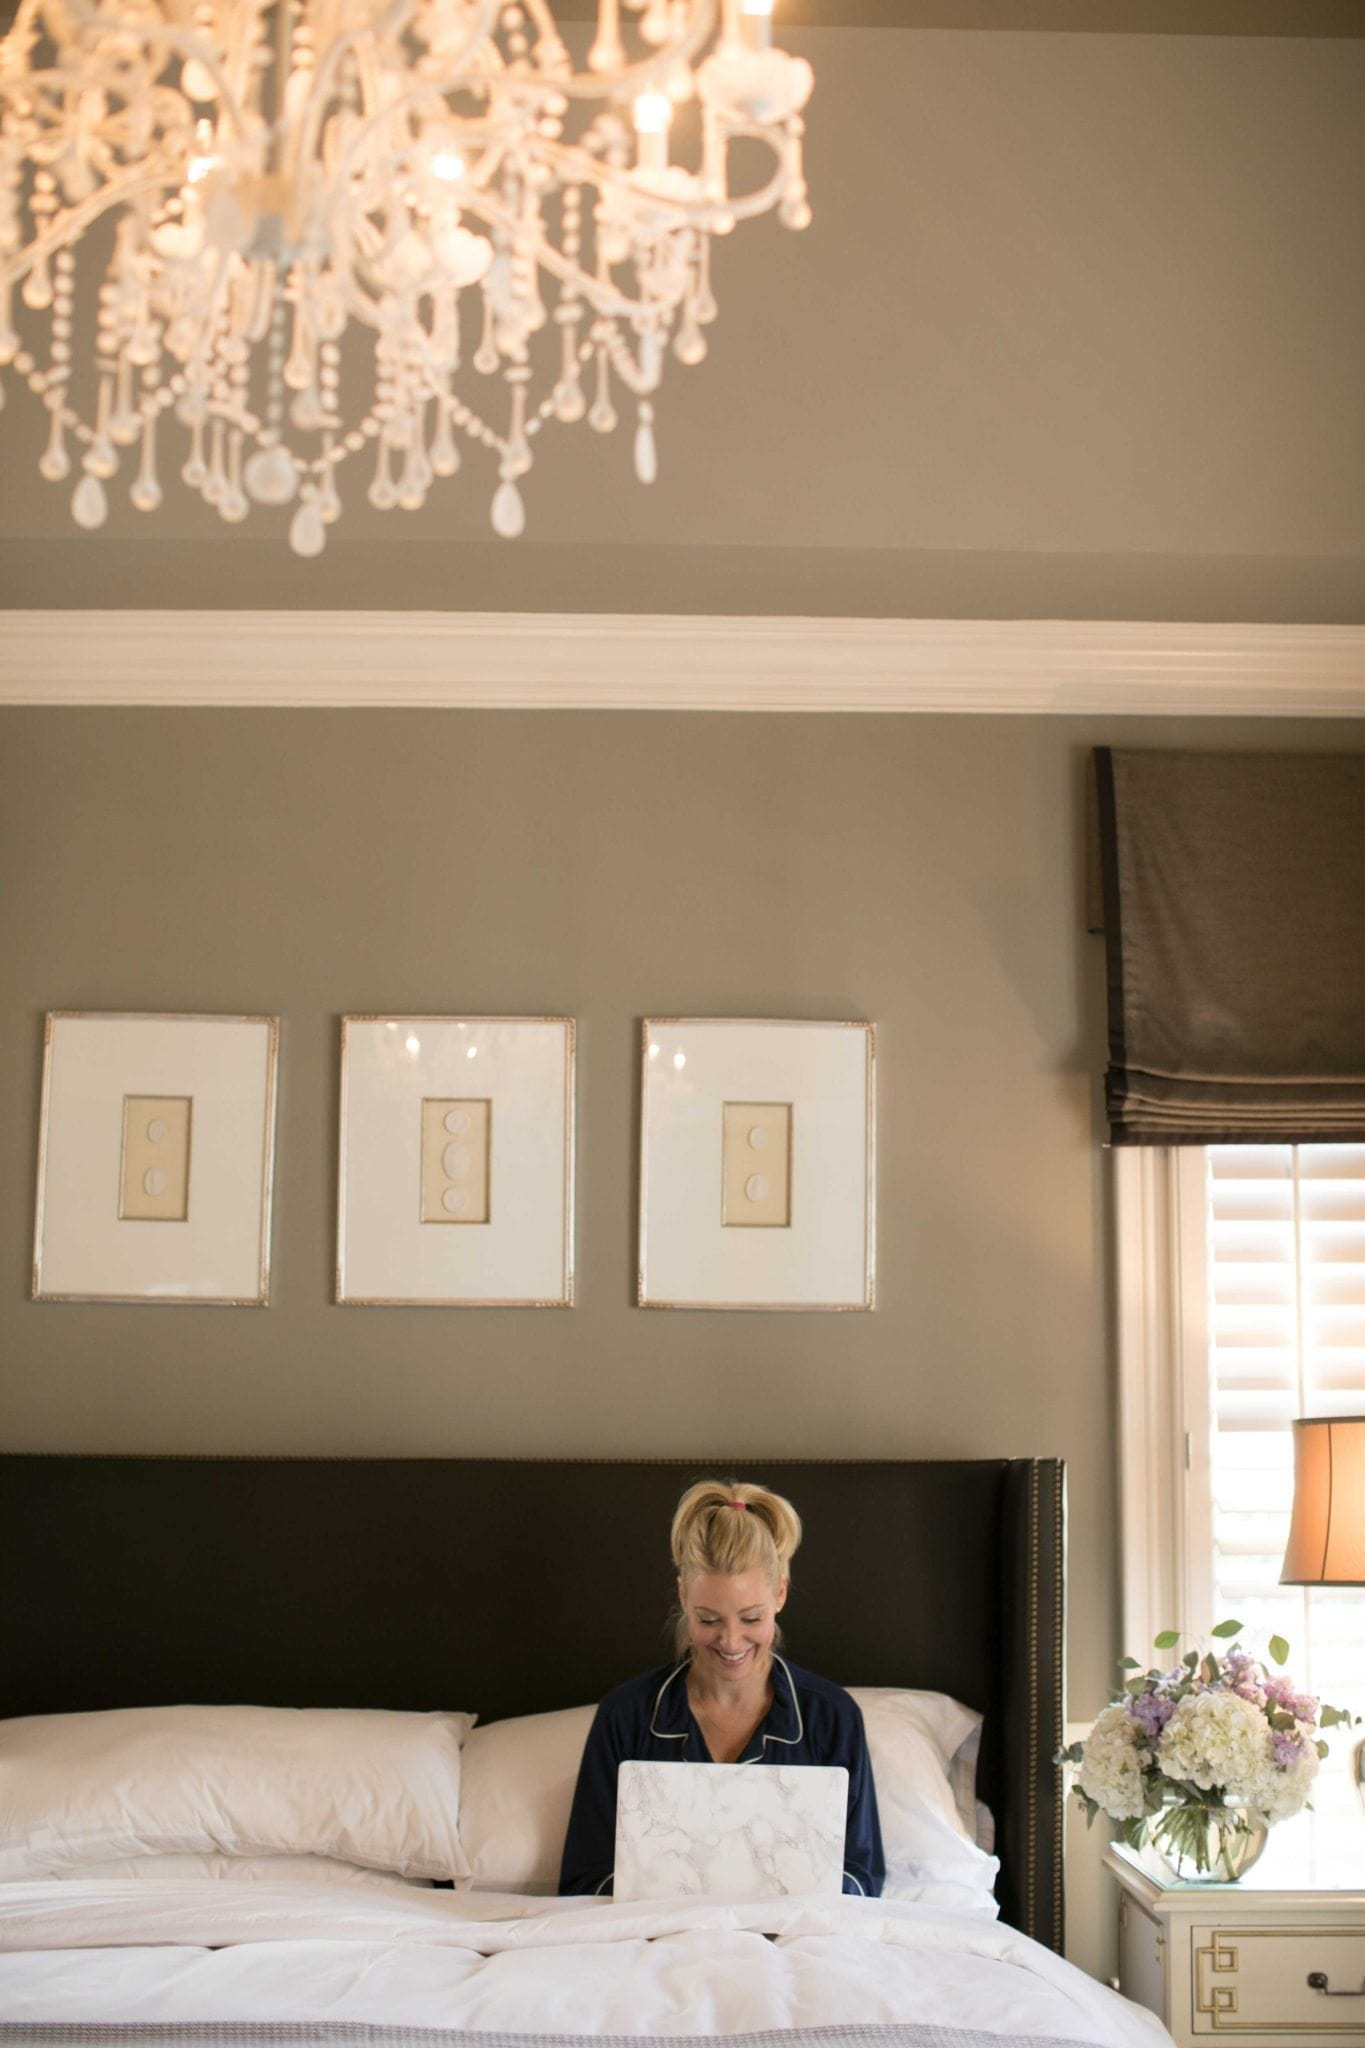 Squirrel Tail dark gray paint color recommendation. Brown headboard with white chandelier in master bedroom.